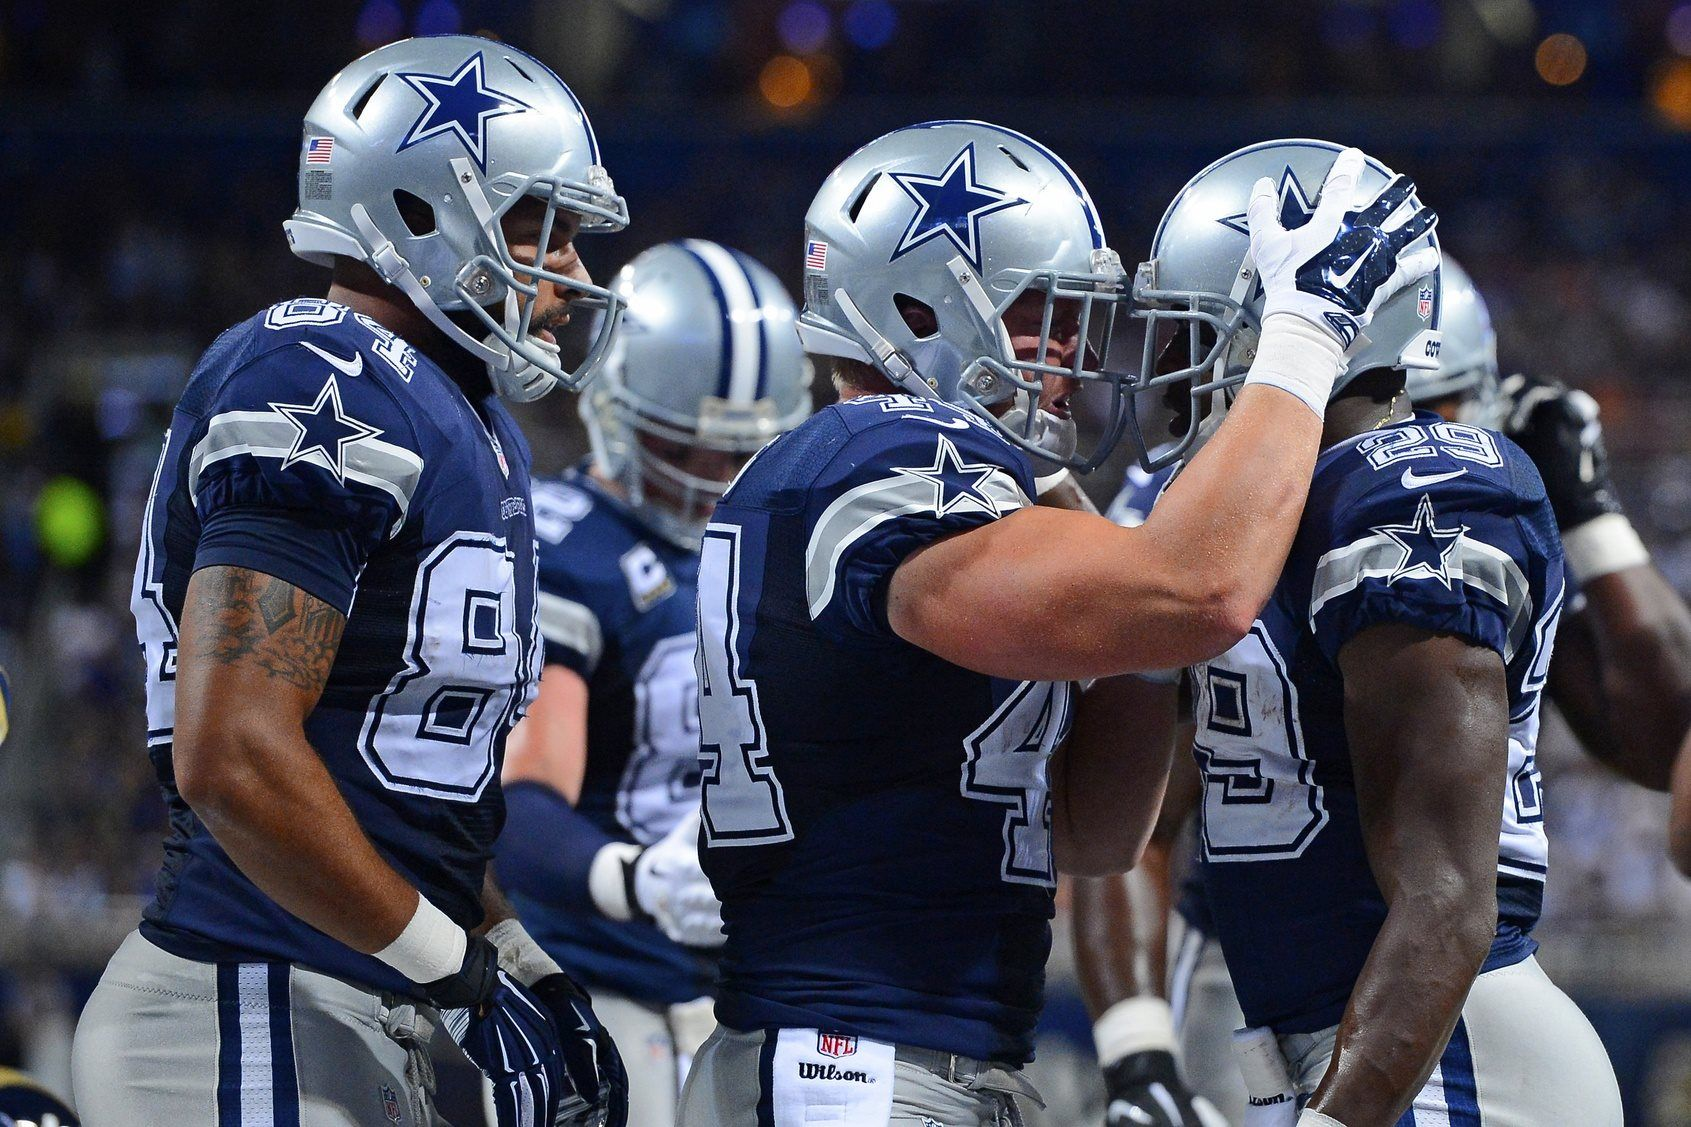 Pin by Shannon Moyer on Dallas Cowboys best Defensive. Players in 2020   Nfl football players